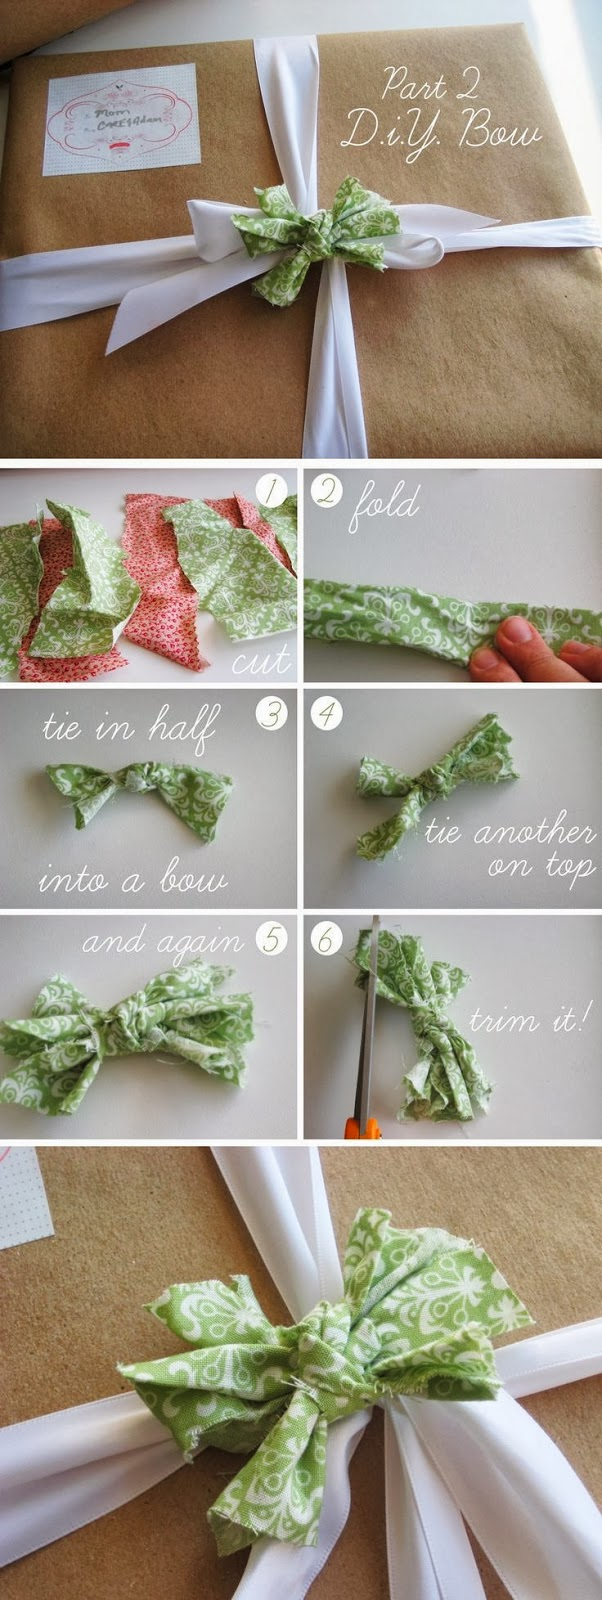 Bow bows do it yourself crafts homemade easy crafts solutioingenieria Images